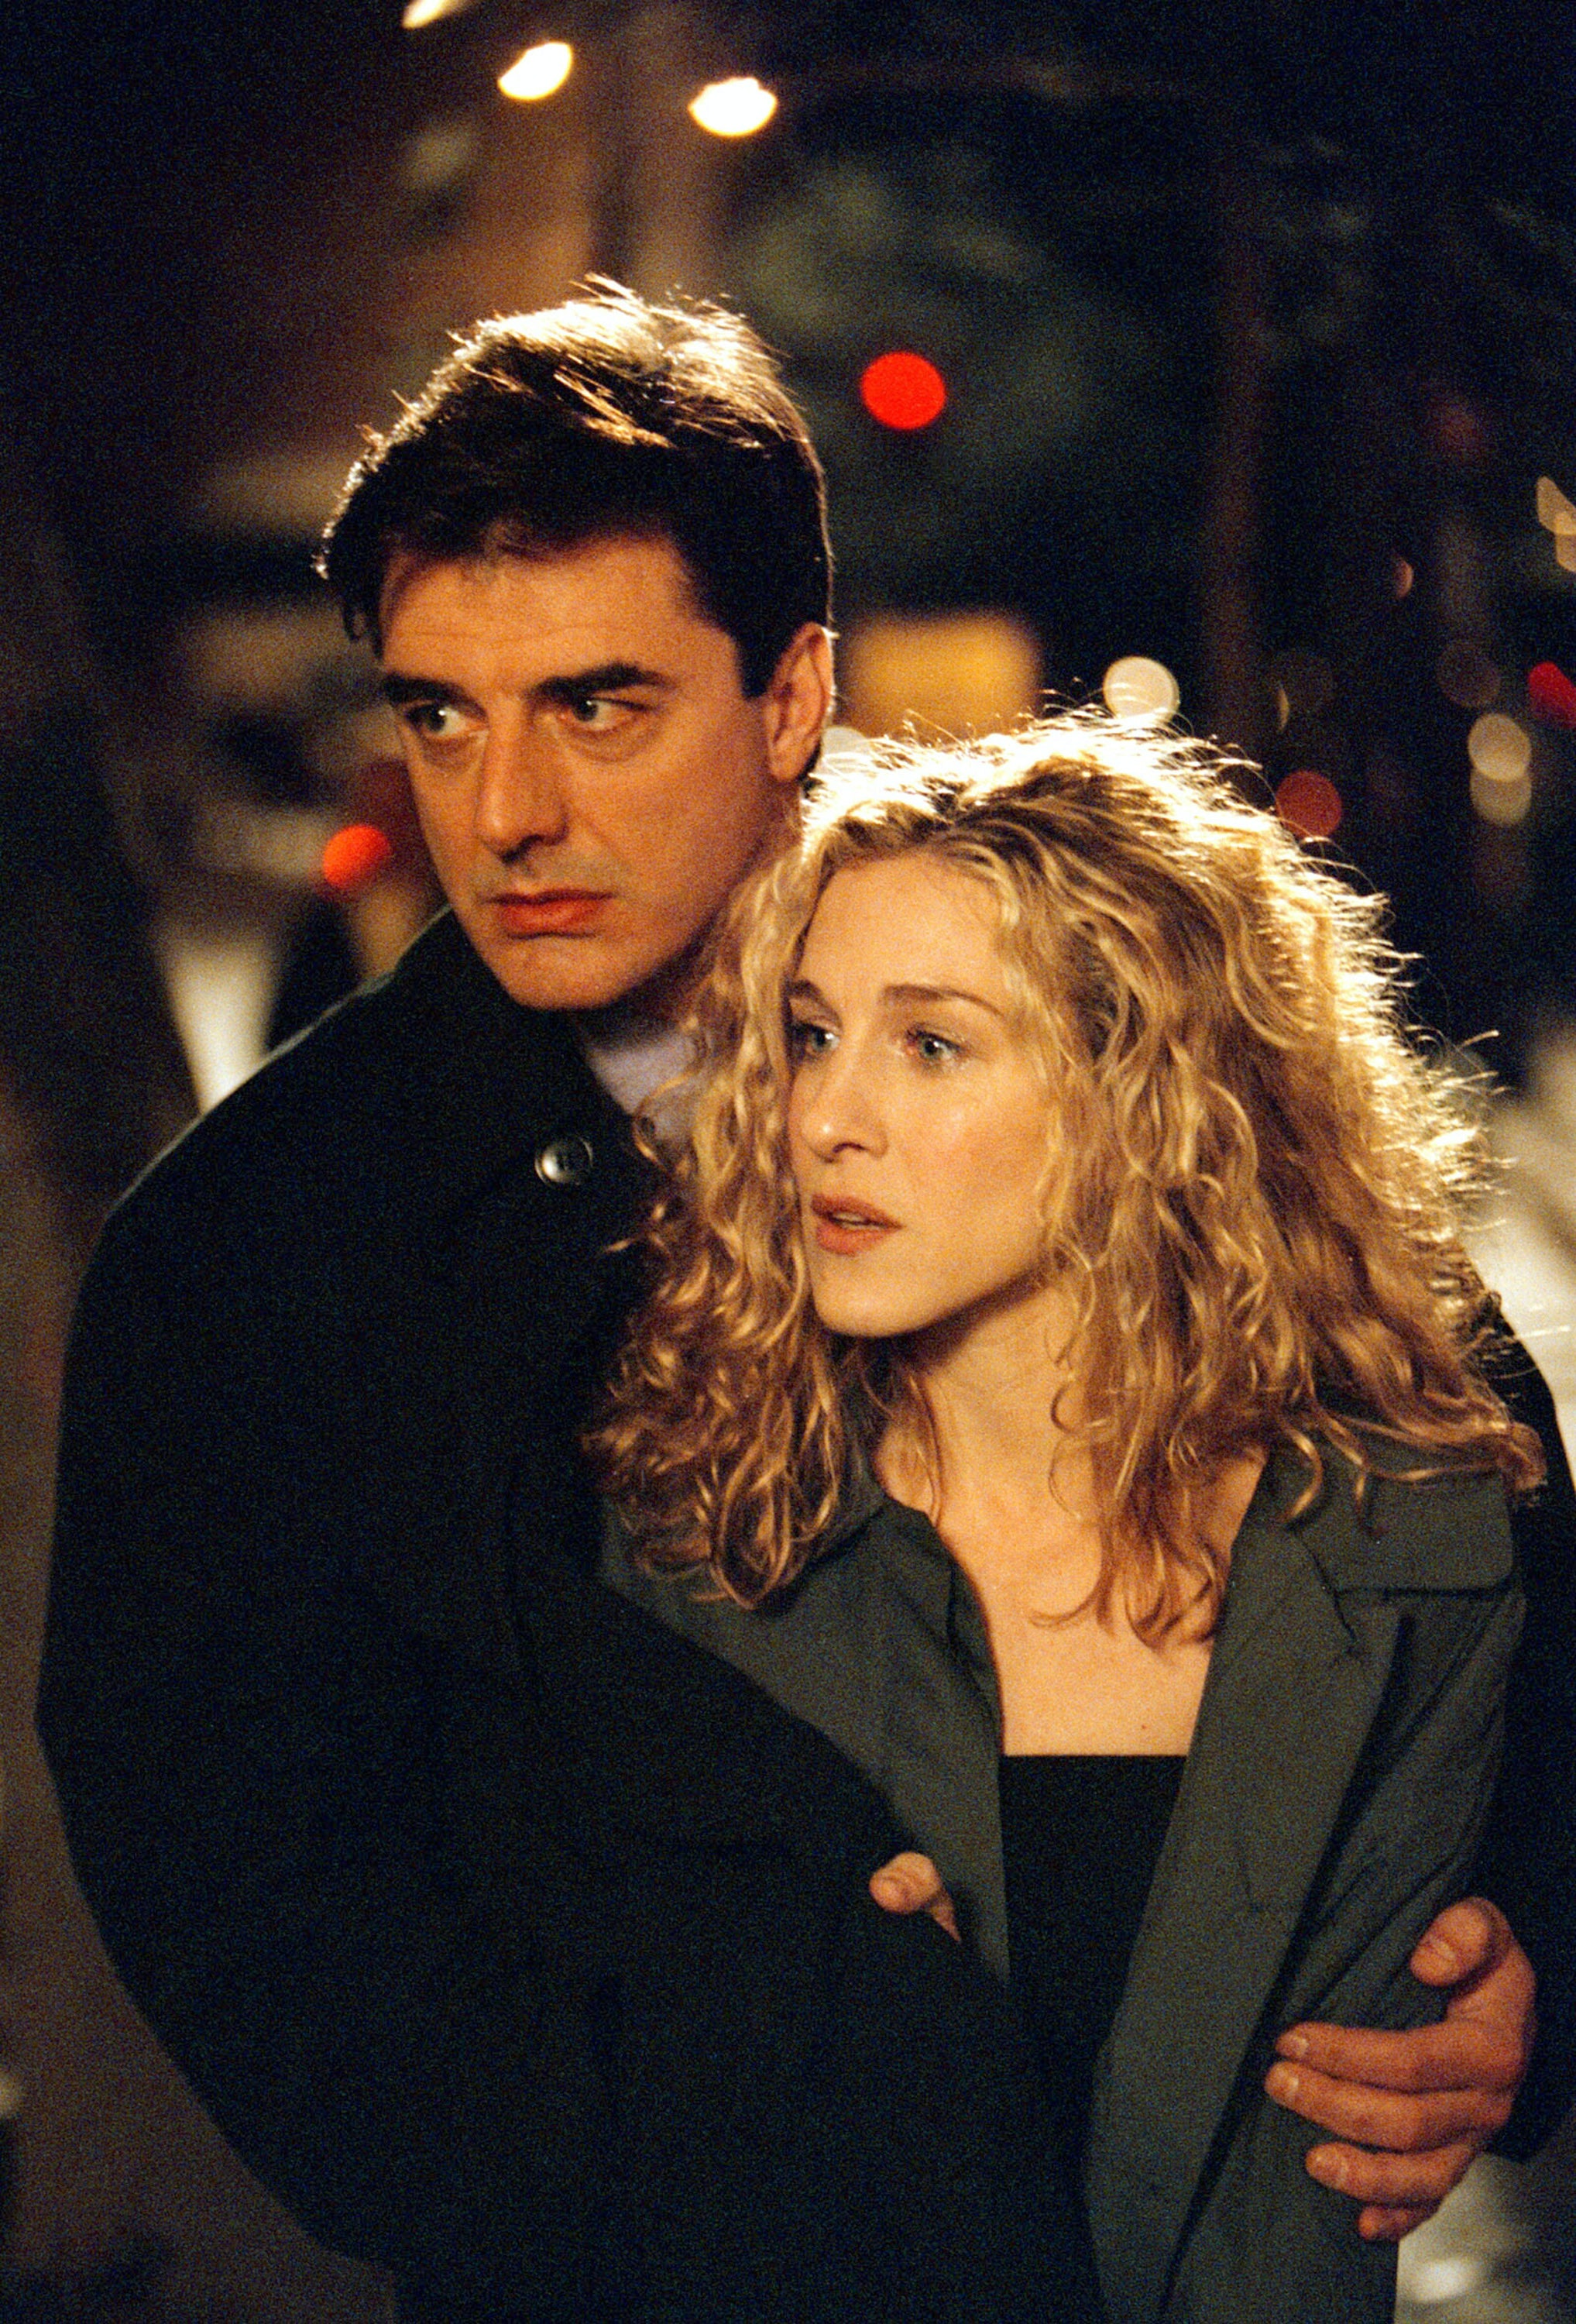 Chris noth in sex and the city